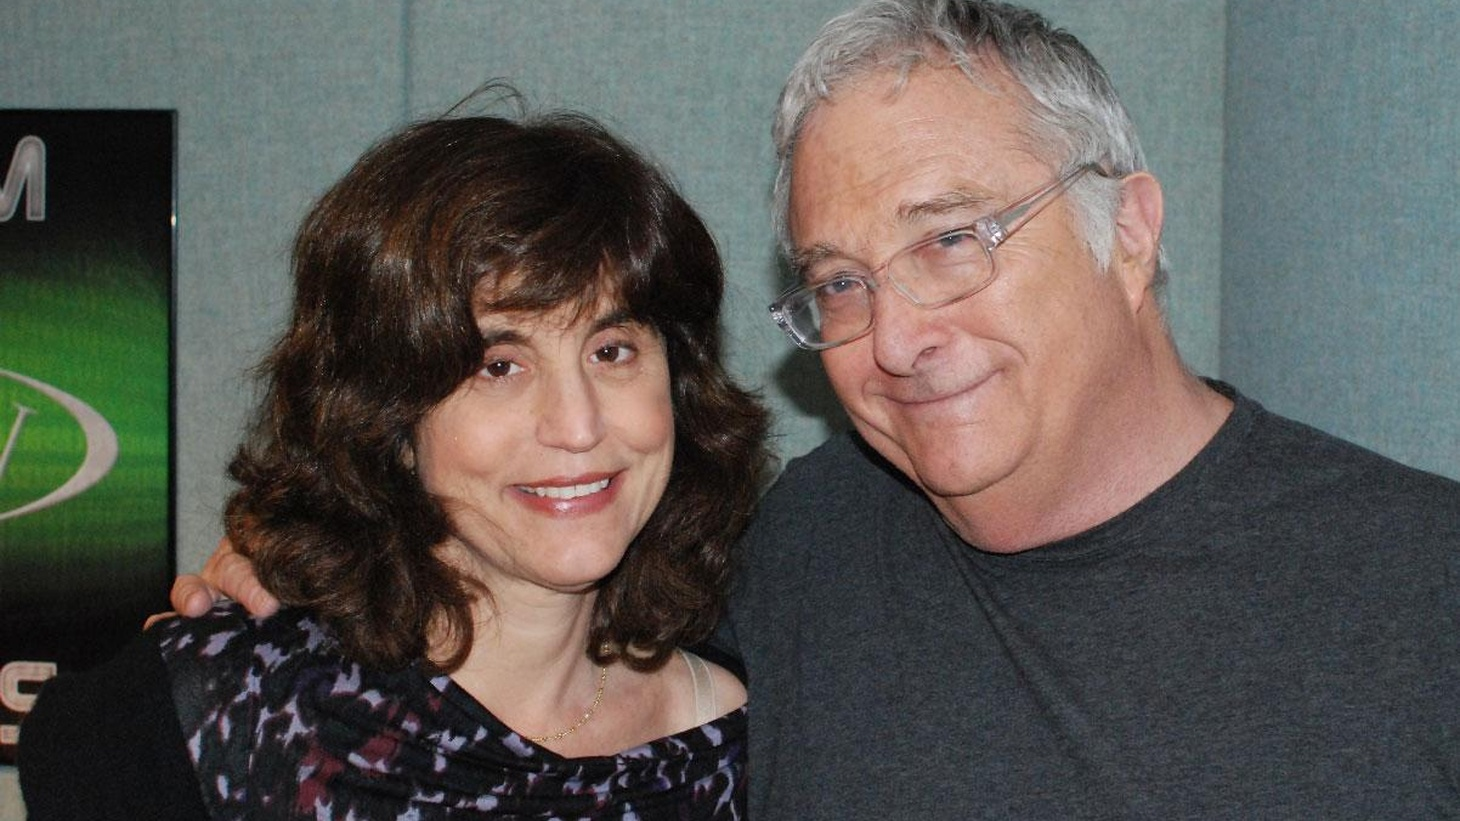 "Composer-singer-songwriter Randy Newman has had 20 Oscar nominations and one win. This year he's nominated in the Best Song category for ""We Belong Together"" from Toy Story 3. But despite his success he says he wishes he was really good. Then, David Friendly, the producer behind the Big Momma's House franchise, talks about being a white guy in the urban comedy business."